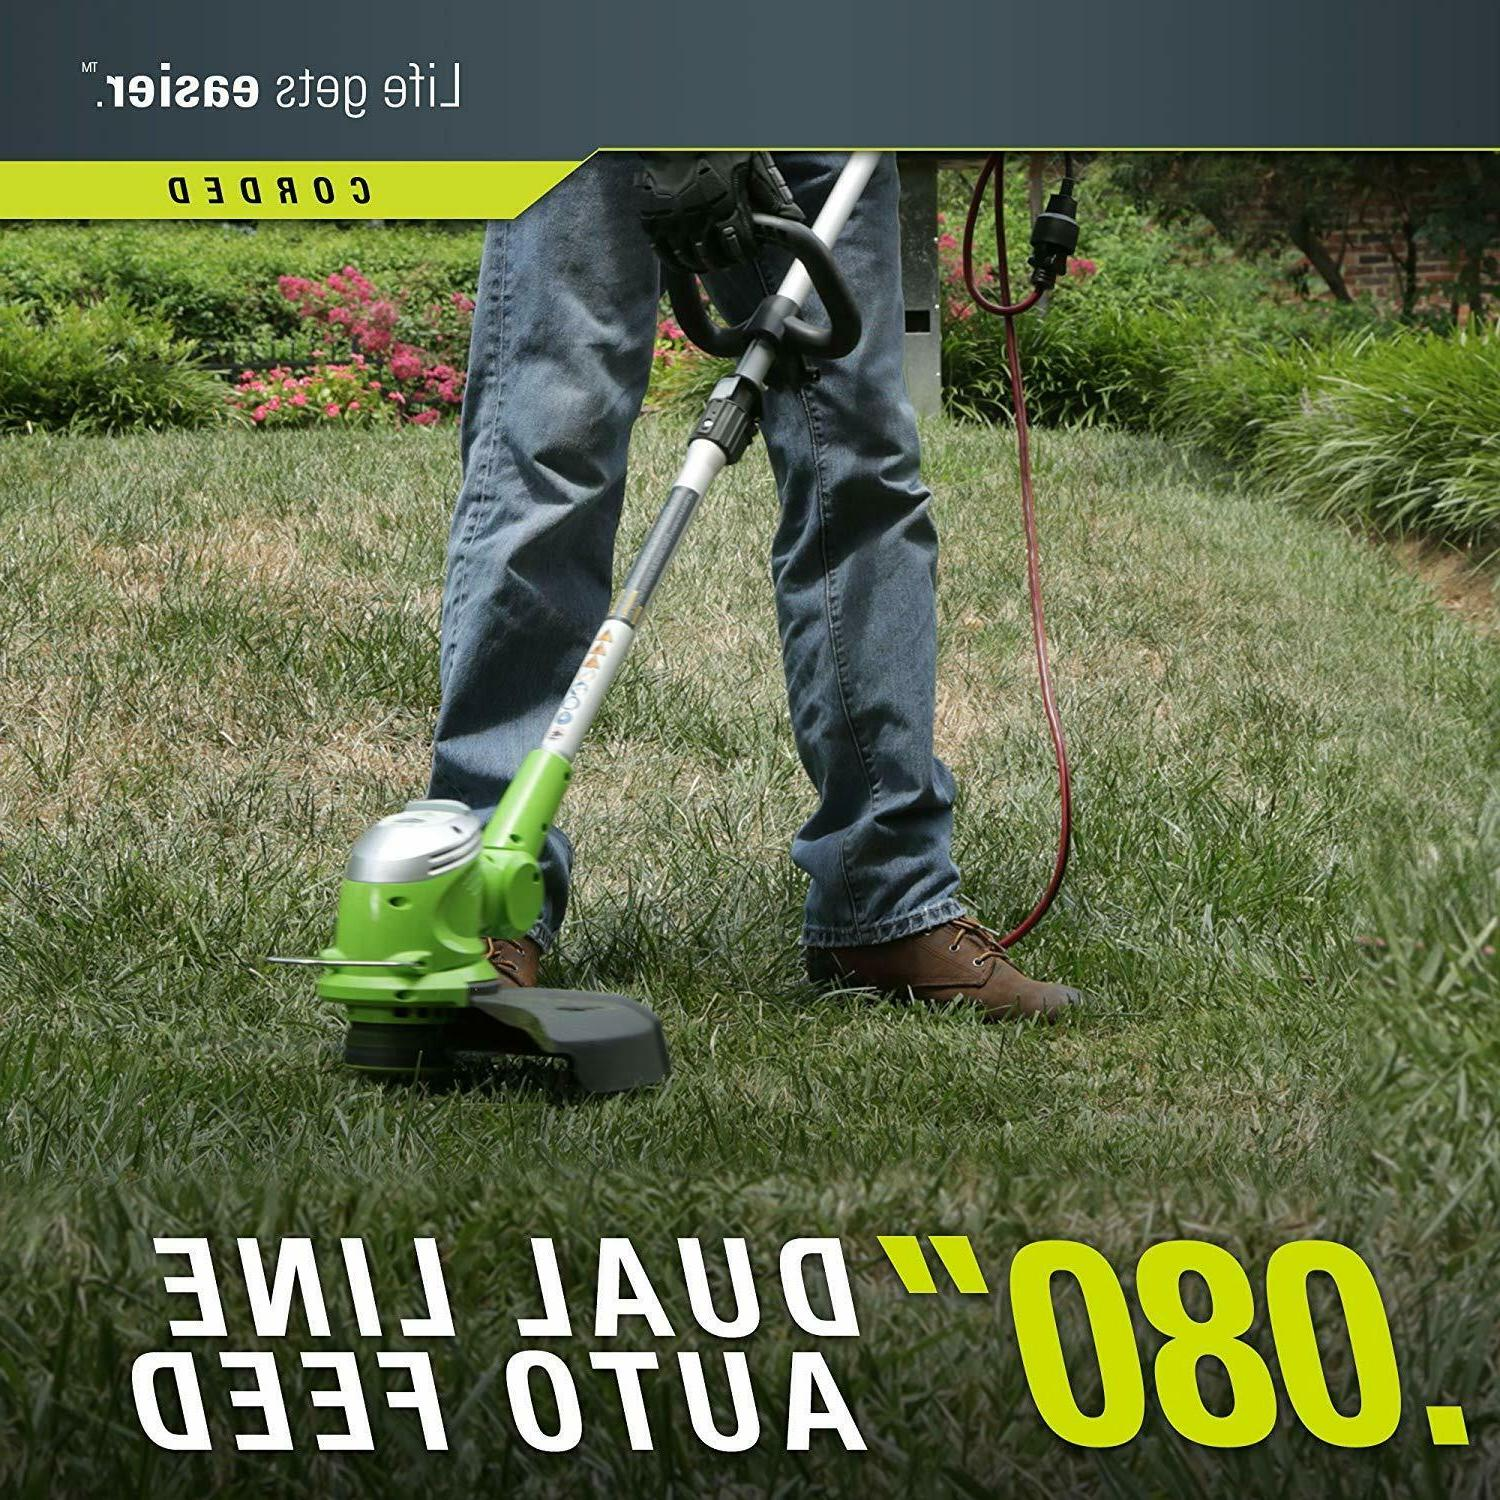 GreenWorks Corded Electric Trimmer Edger Grass